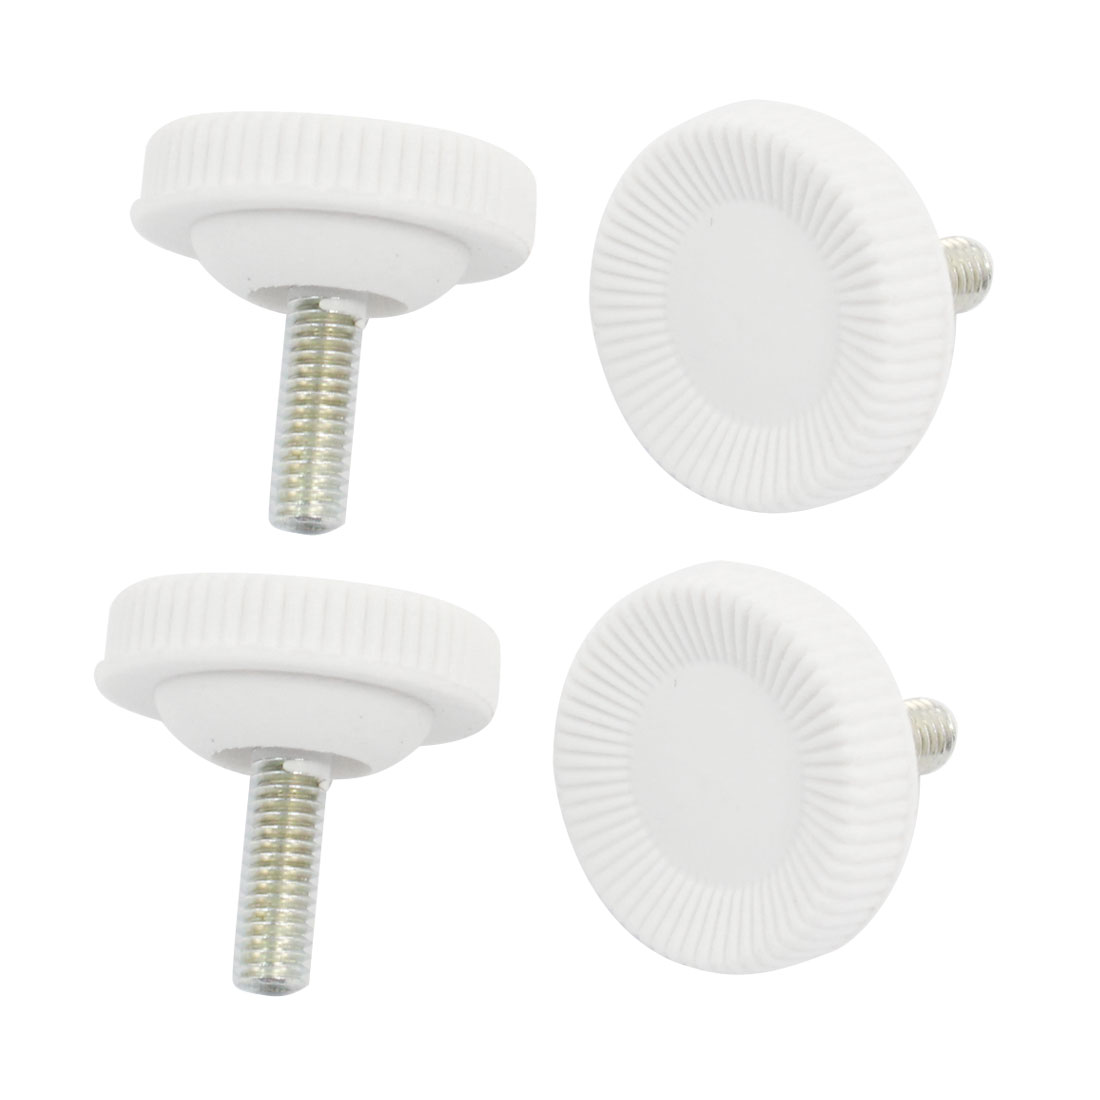 4 Pcs Screw On Type Furniture Glide Leveling Foot Adjuster 7mmx15mm White